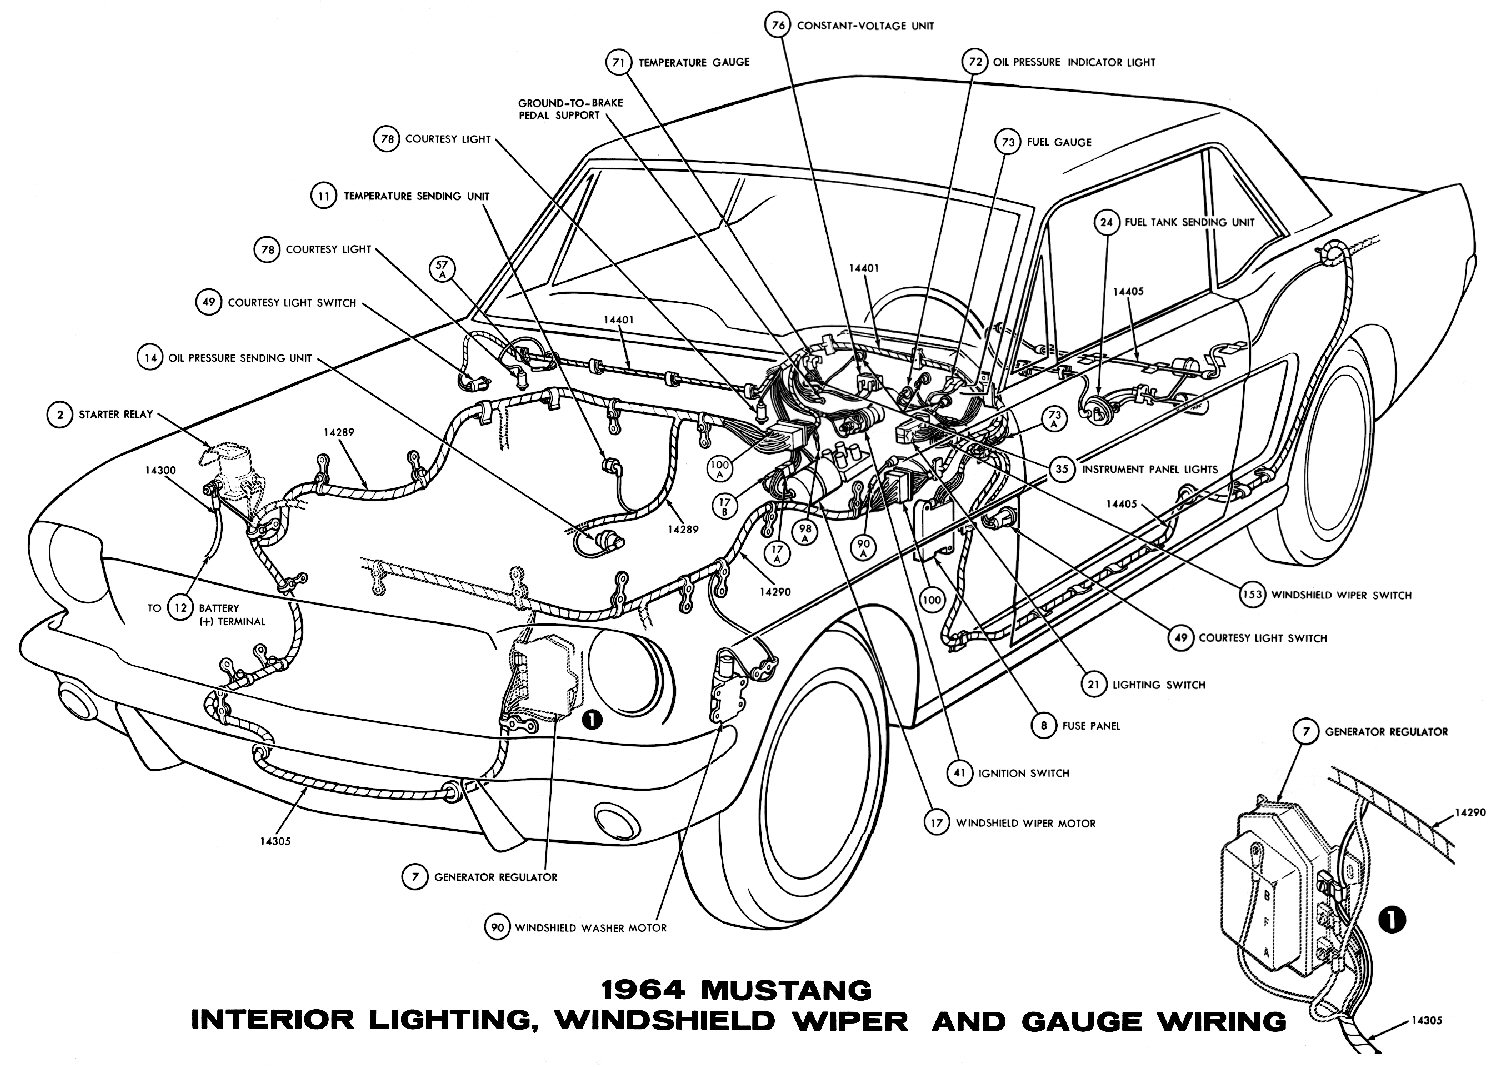 1964 mustang wiring diagrams average joe restoration. Black Bedroom Furniture Sets. Home Design Ideas